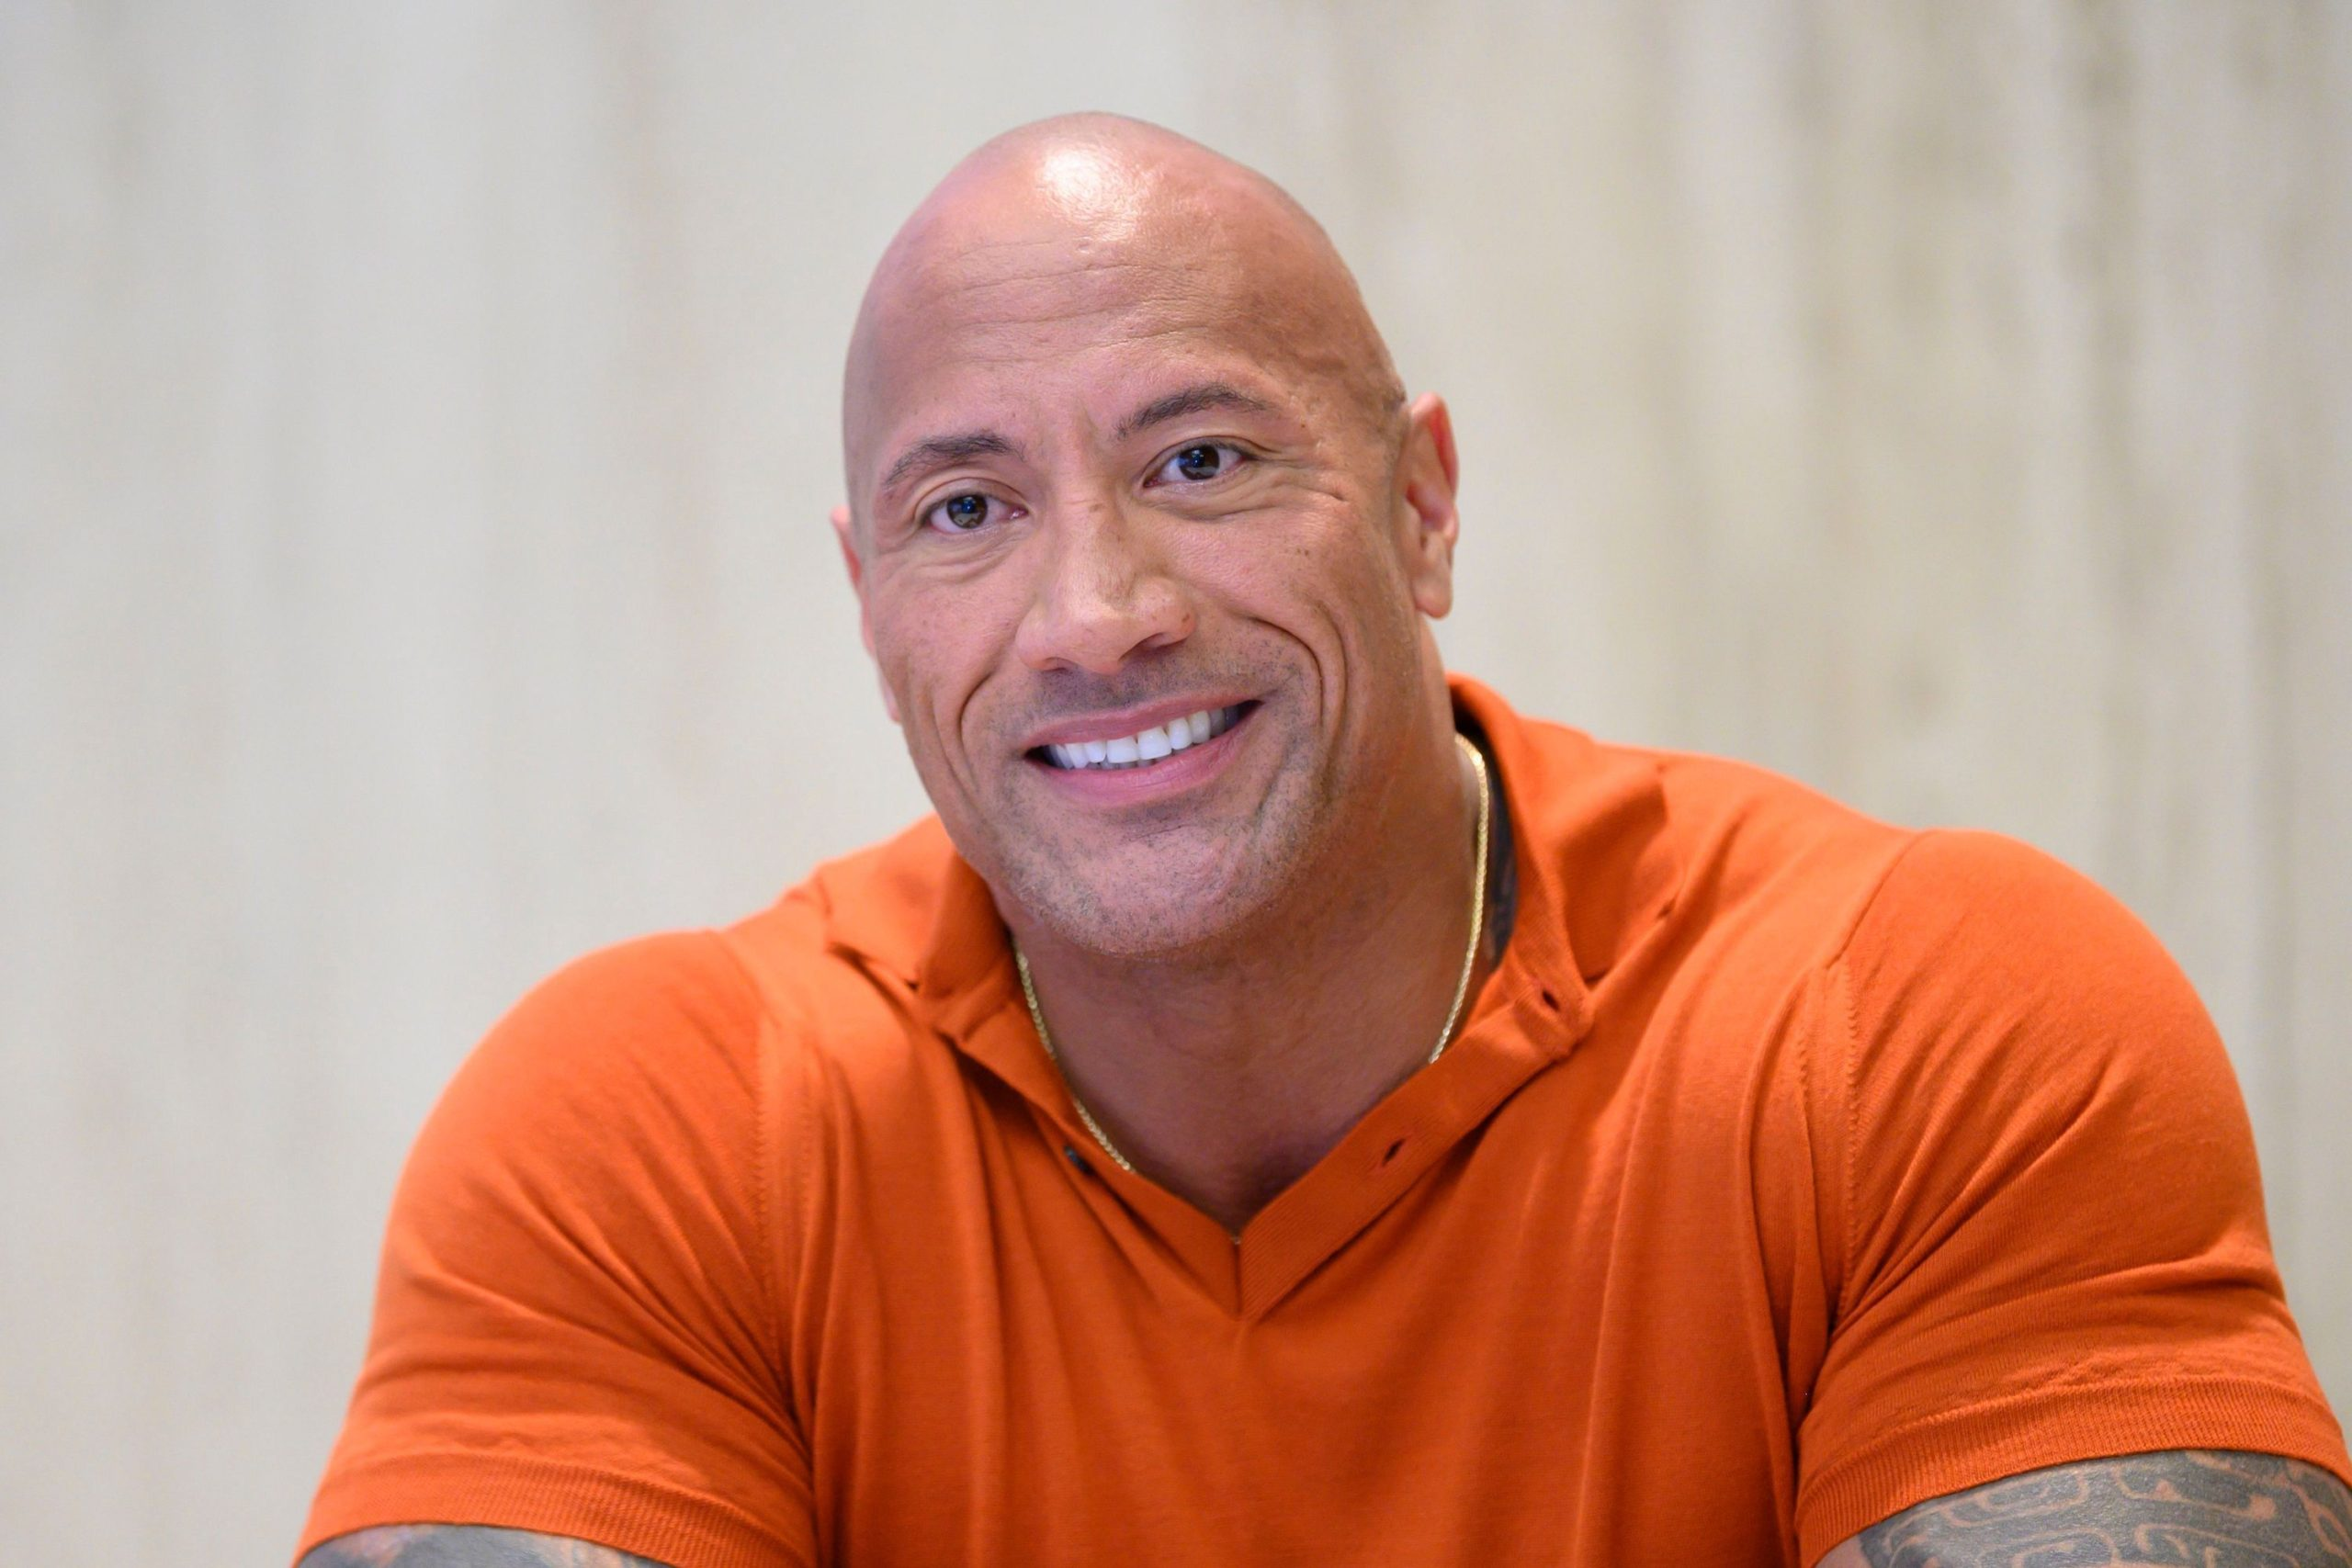 Dwayne Johnson Img scaled - Dwayne Johnson Net Worth, Pics, Wallpapers, Career and Biography